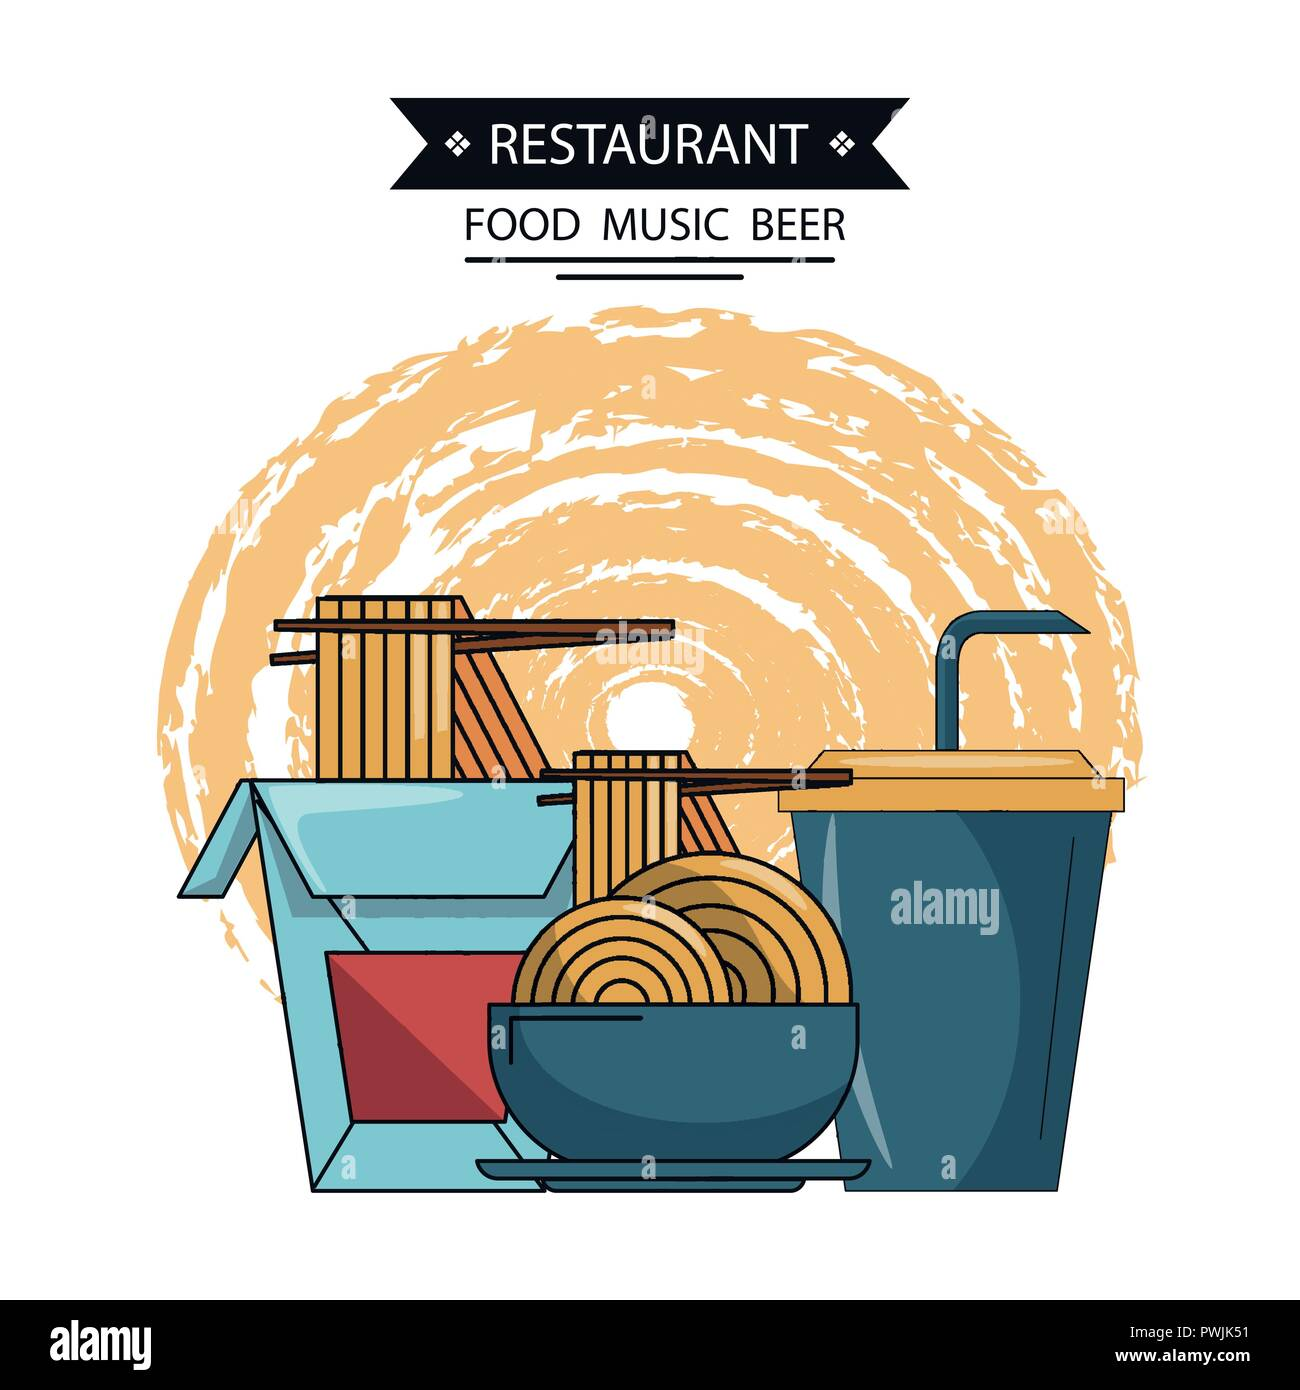 Chinese Food Items And Dining Utensils Vector Illustration Graphic Design Stock Vector Image Art Alamy